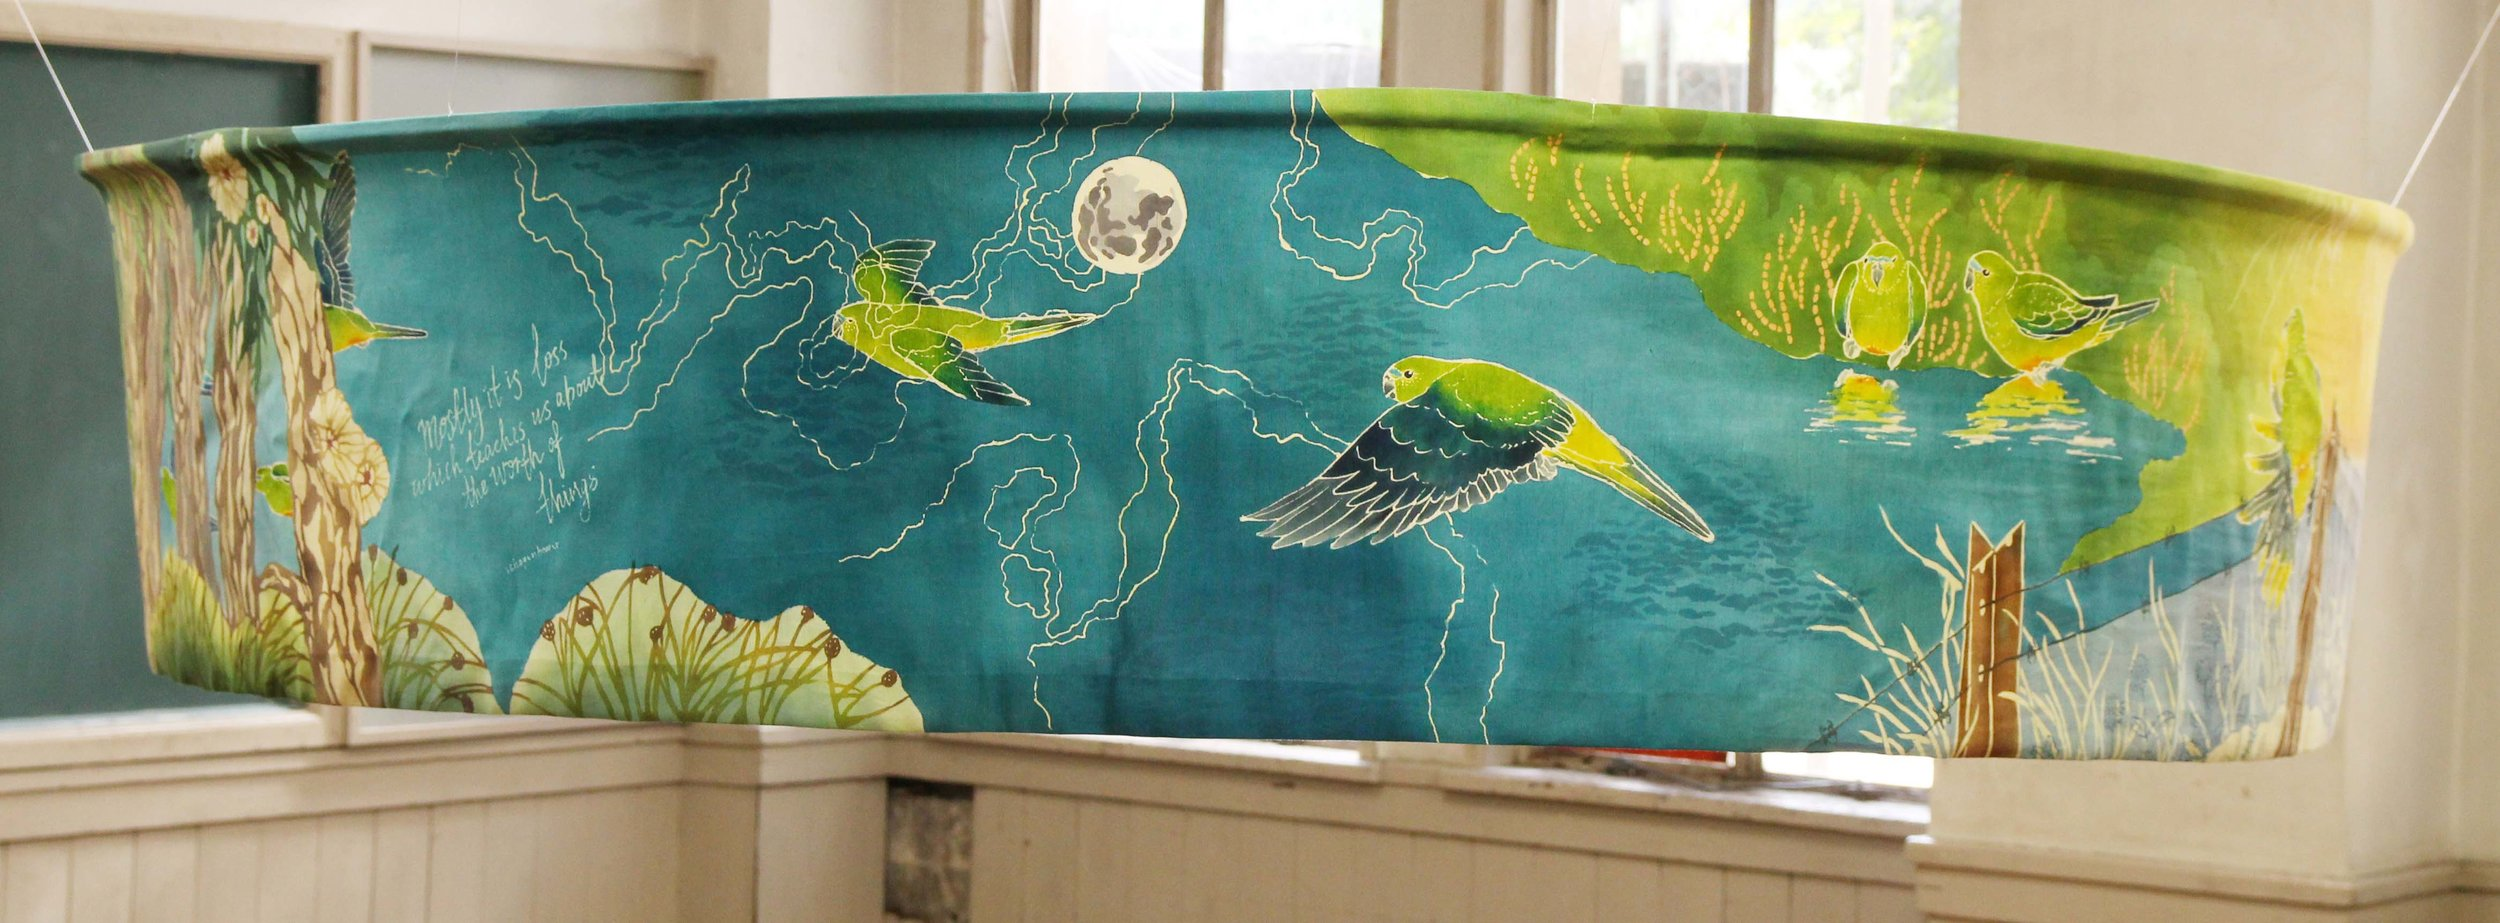 Loss & Worth, 2013. Katazome and Yuzen on silk.  4.5 metres long x 33cm high. A scroll scene depicting the migration of Critically Endangered Orange-bellied Parrots.Image forms a loop so the migration cycle continues.